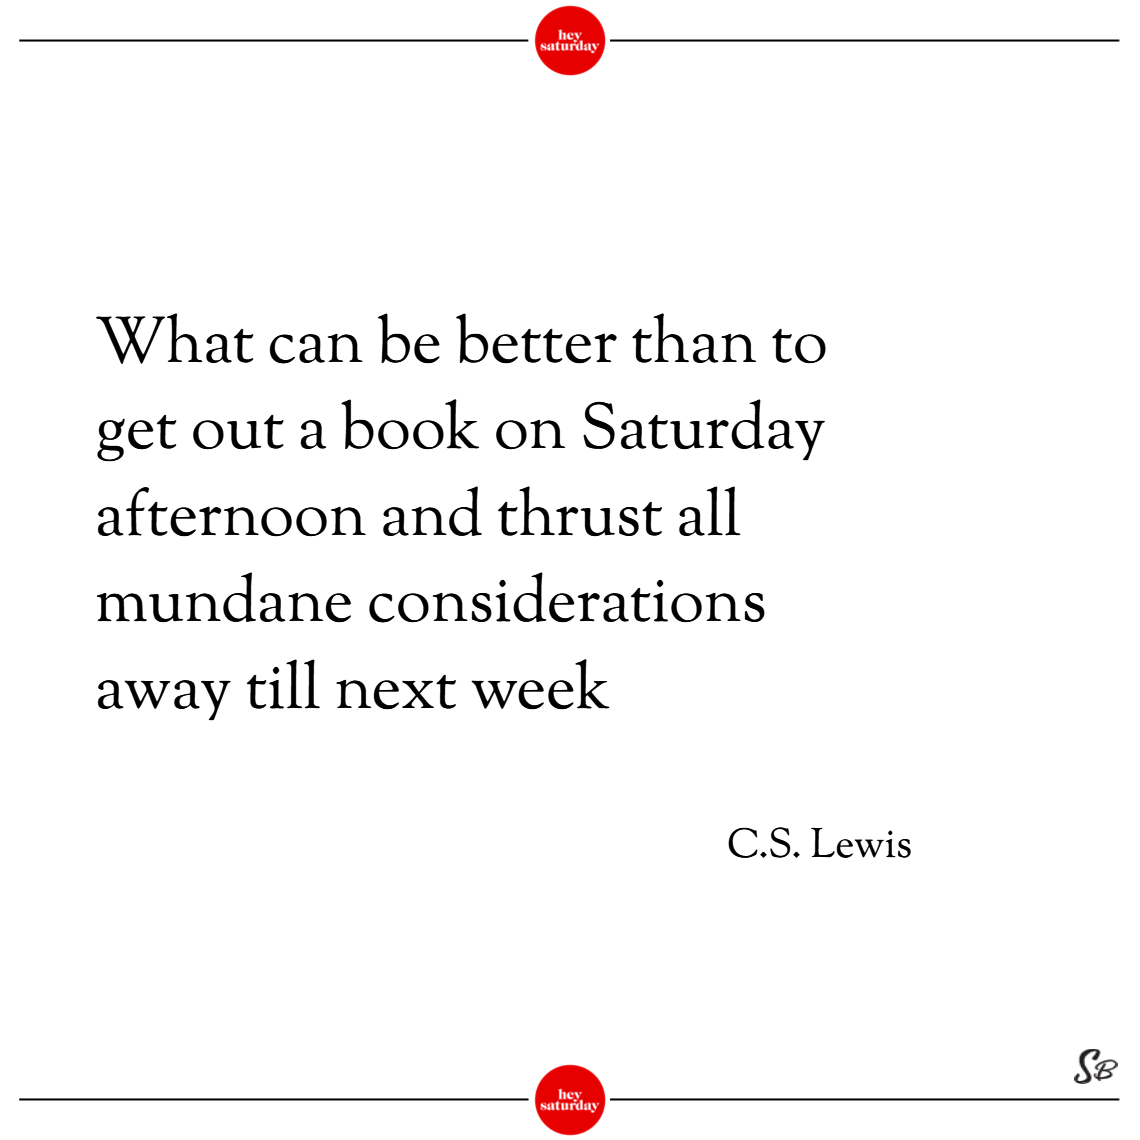 What can be better than to get out a book on saturday afternoon and thrust all mundane considerations away till next week. – c. s. lewis